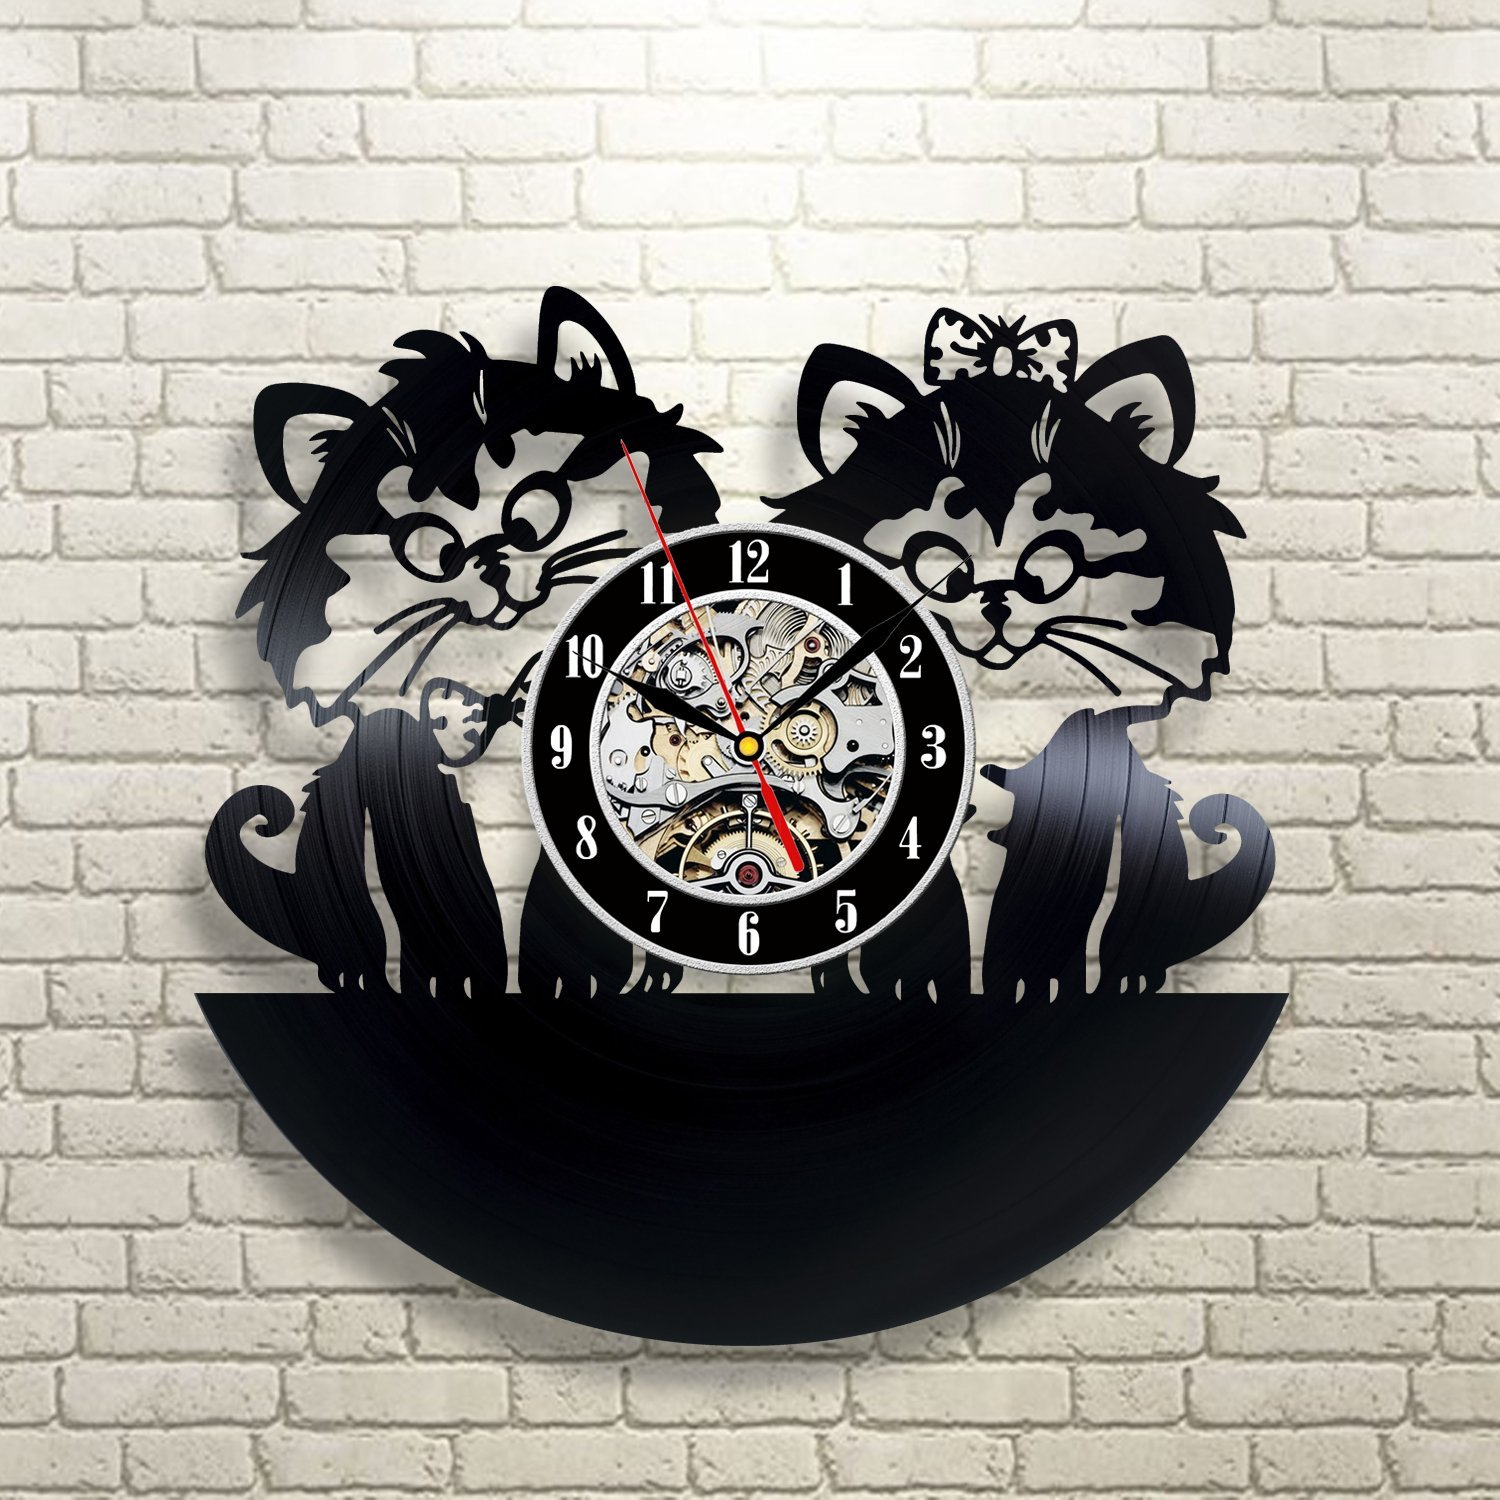 avengers wall clock images